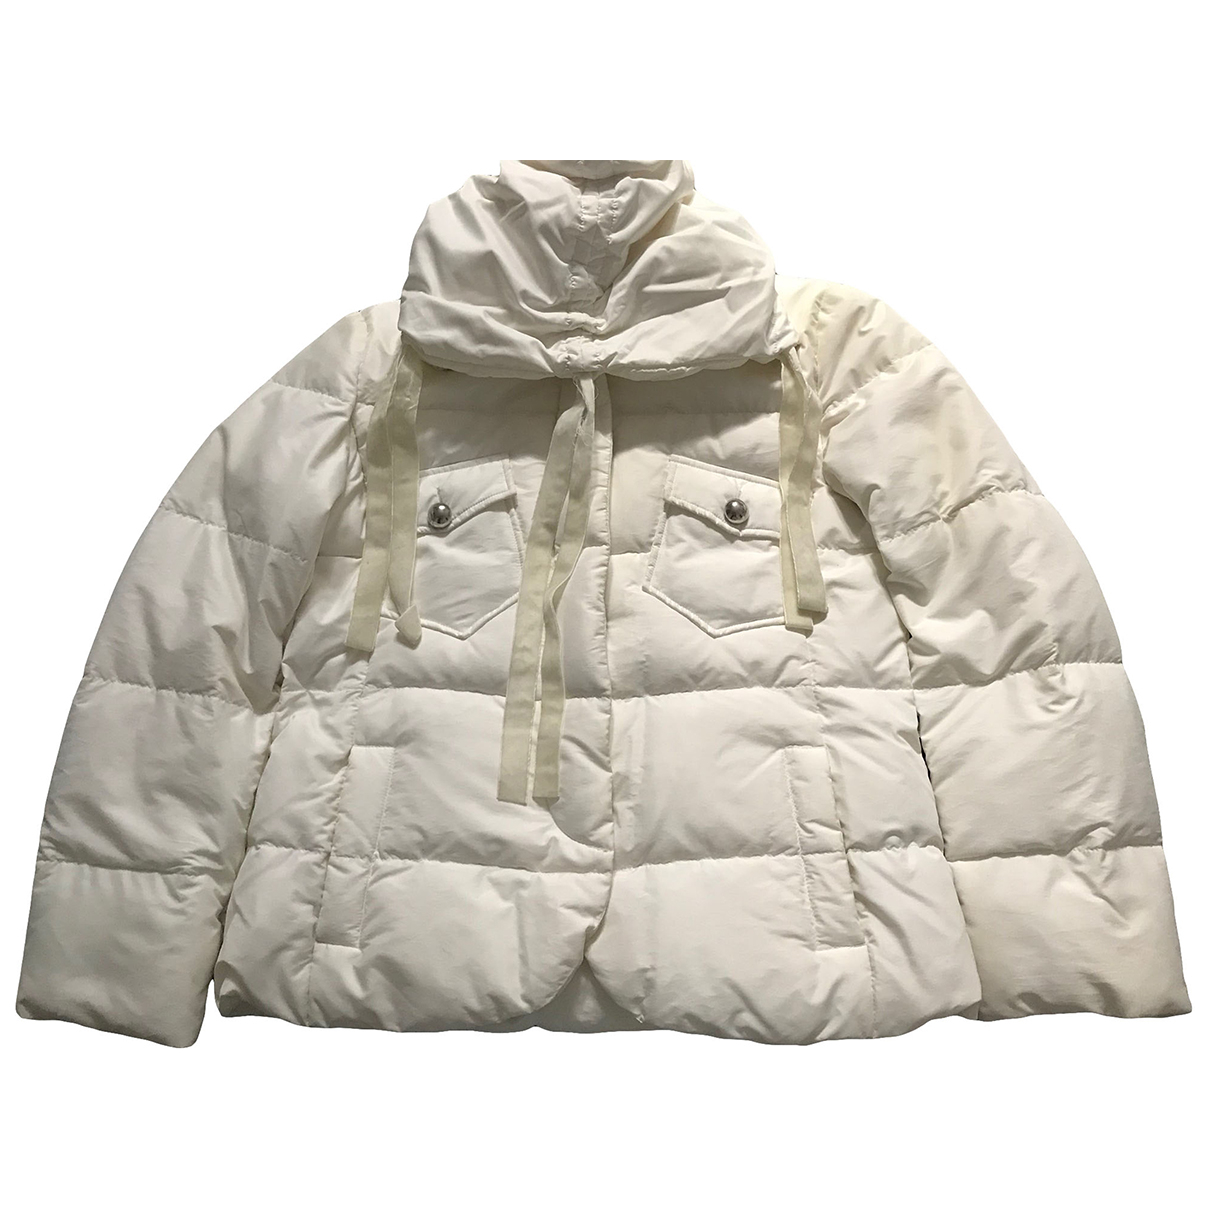 Armani Baby \N White jacket & coat for Kids 12 years - XS FR